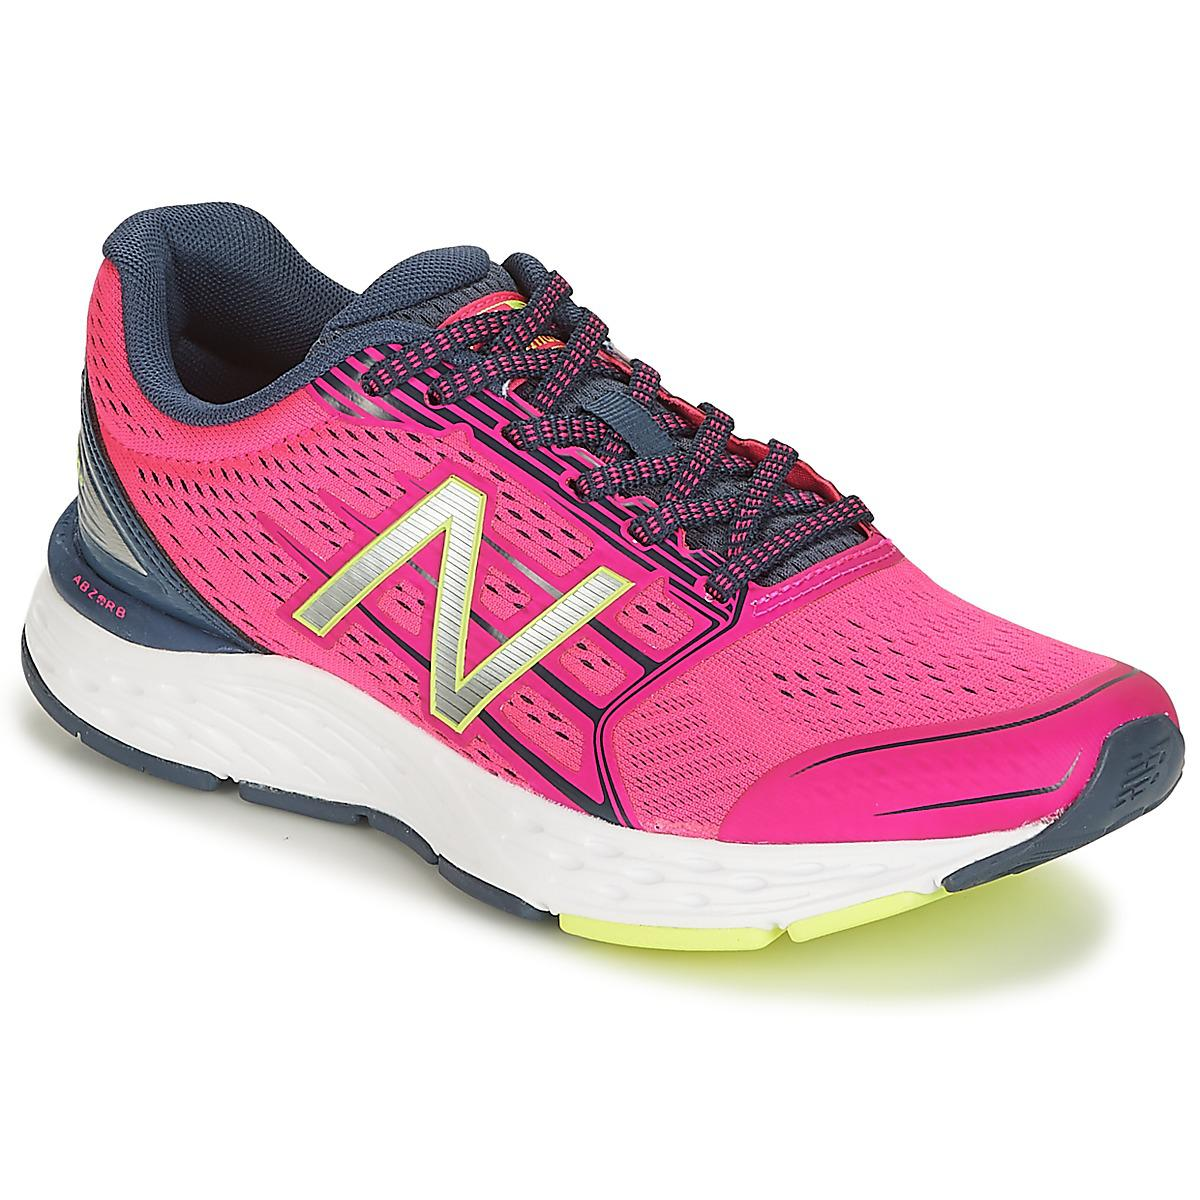 e21d85661b08 New Balance 680 Running Trainers in Pink - Lyst